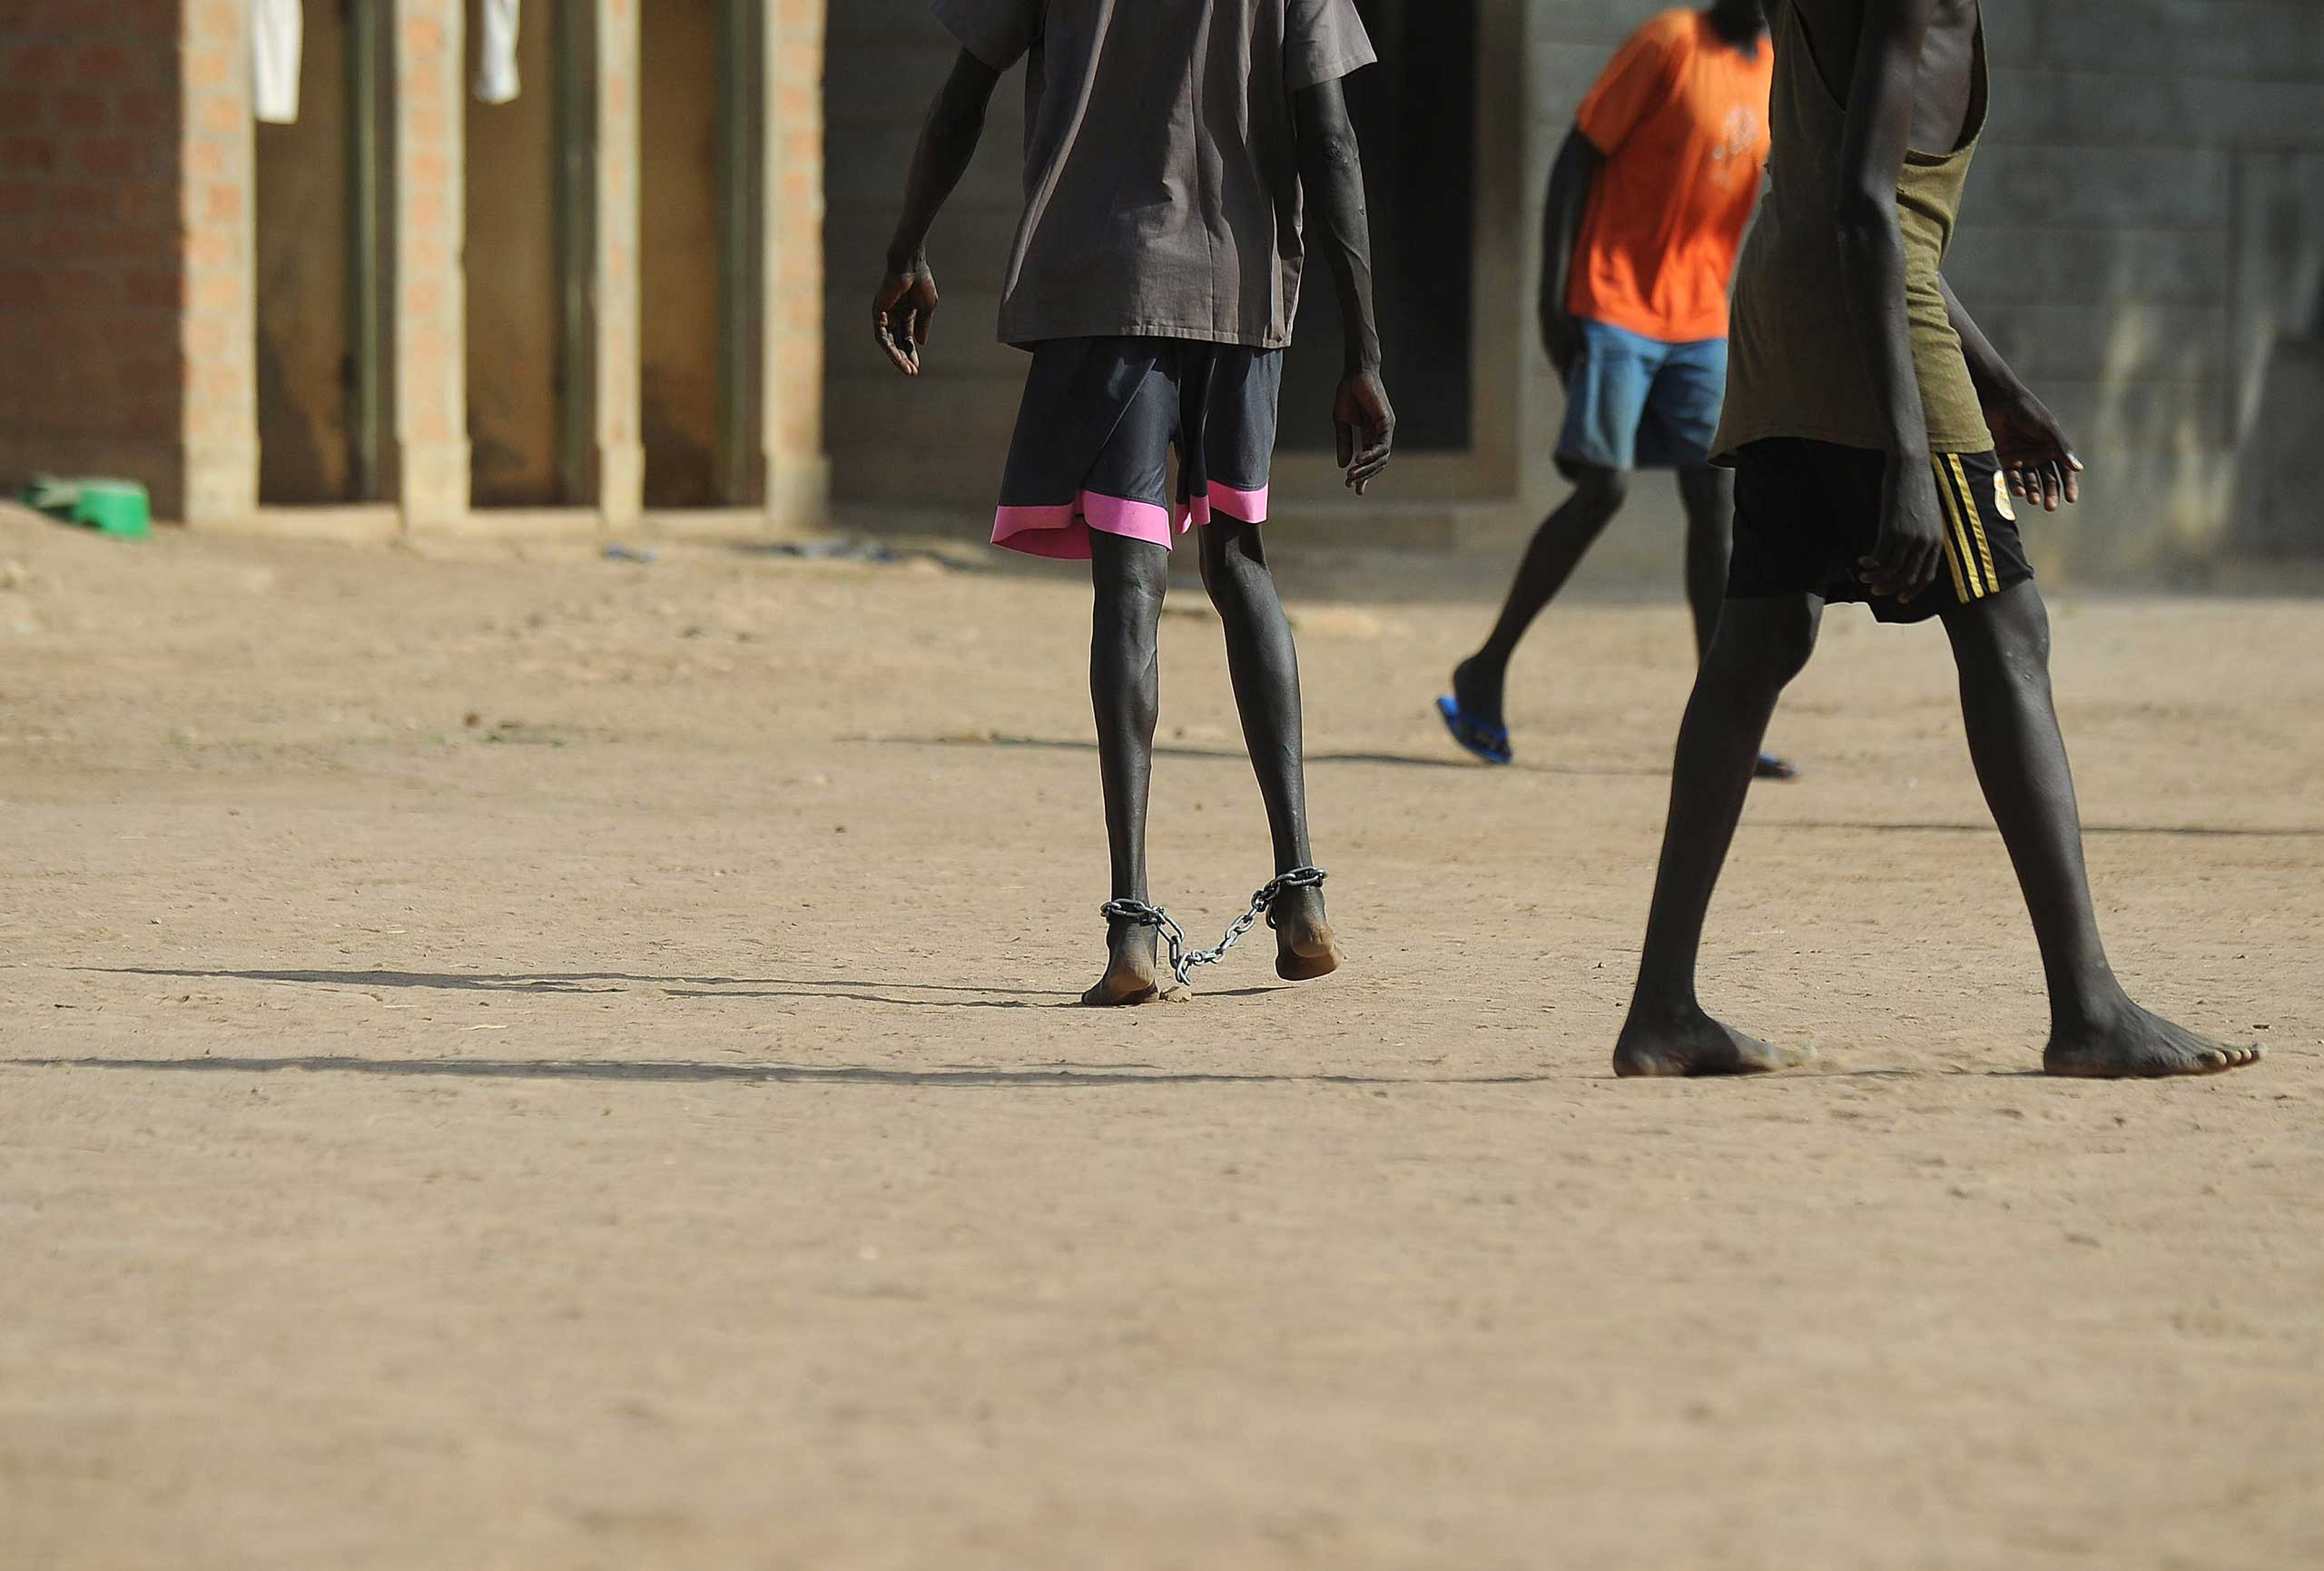 Inmates play football in the courtyard of the prison facility in Rumbek, Lakes state in South Sudan, Feb. 19, 2014.